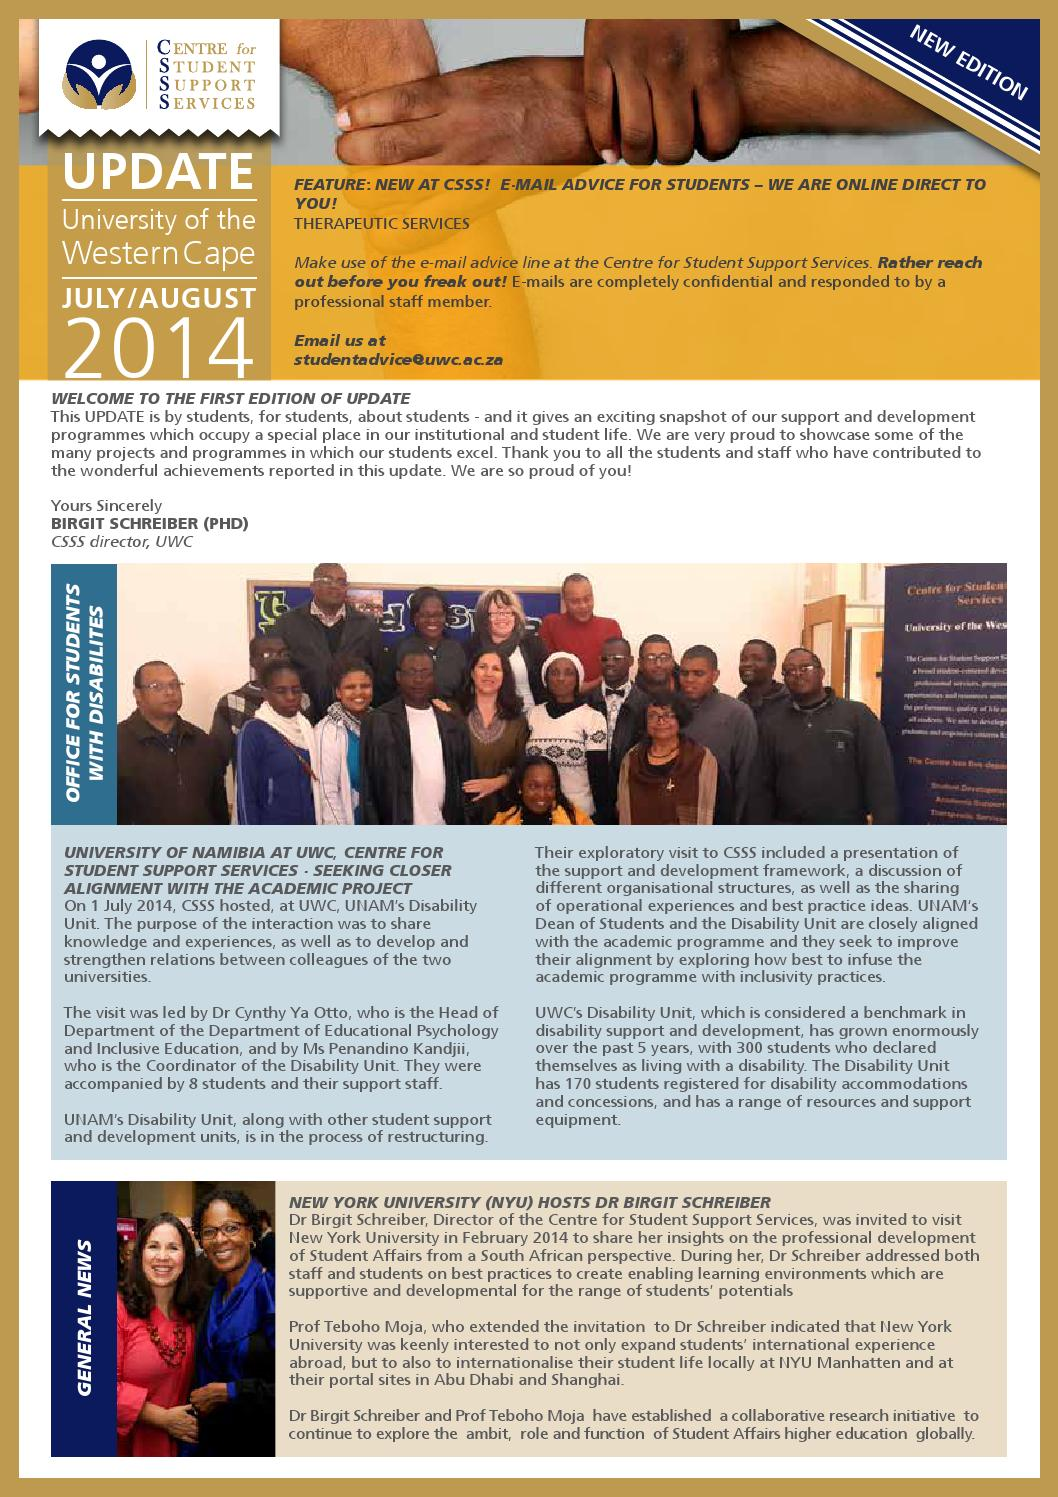 SA-GER CDR: News from the South African-German Centre of Development Research